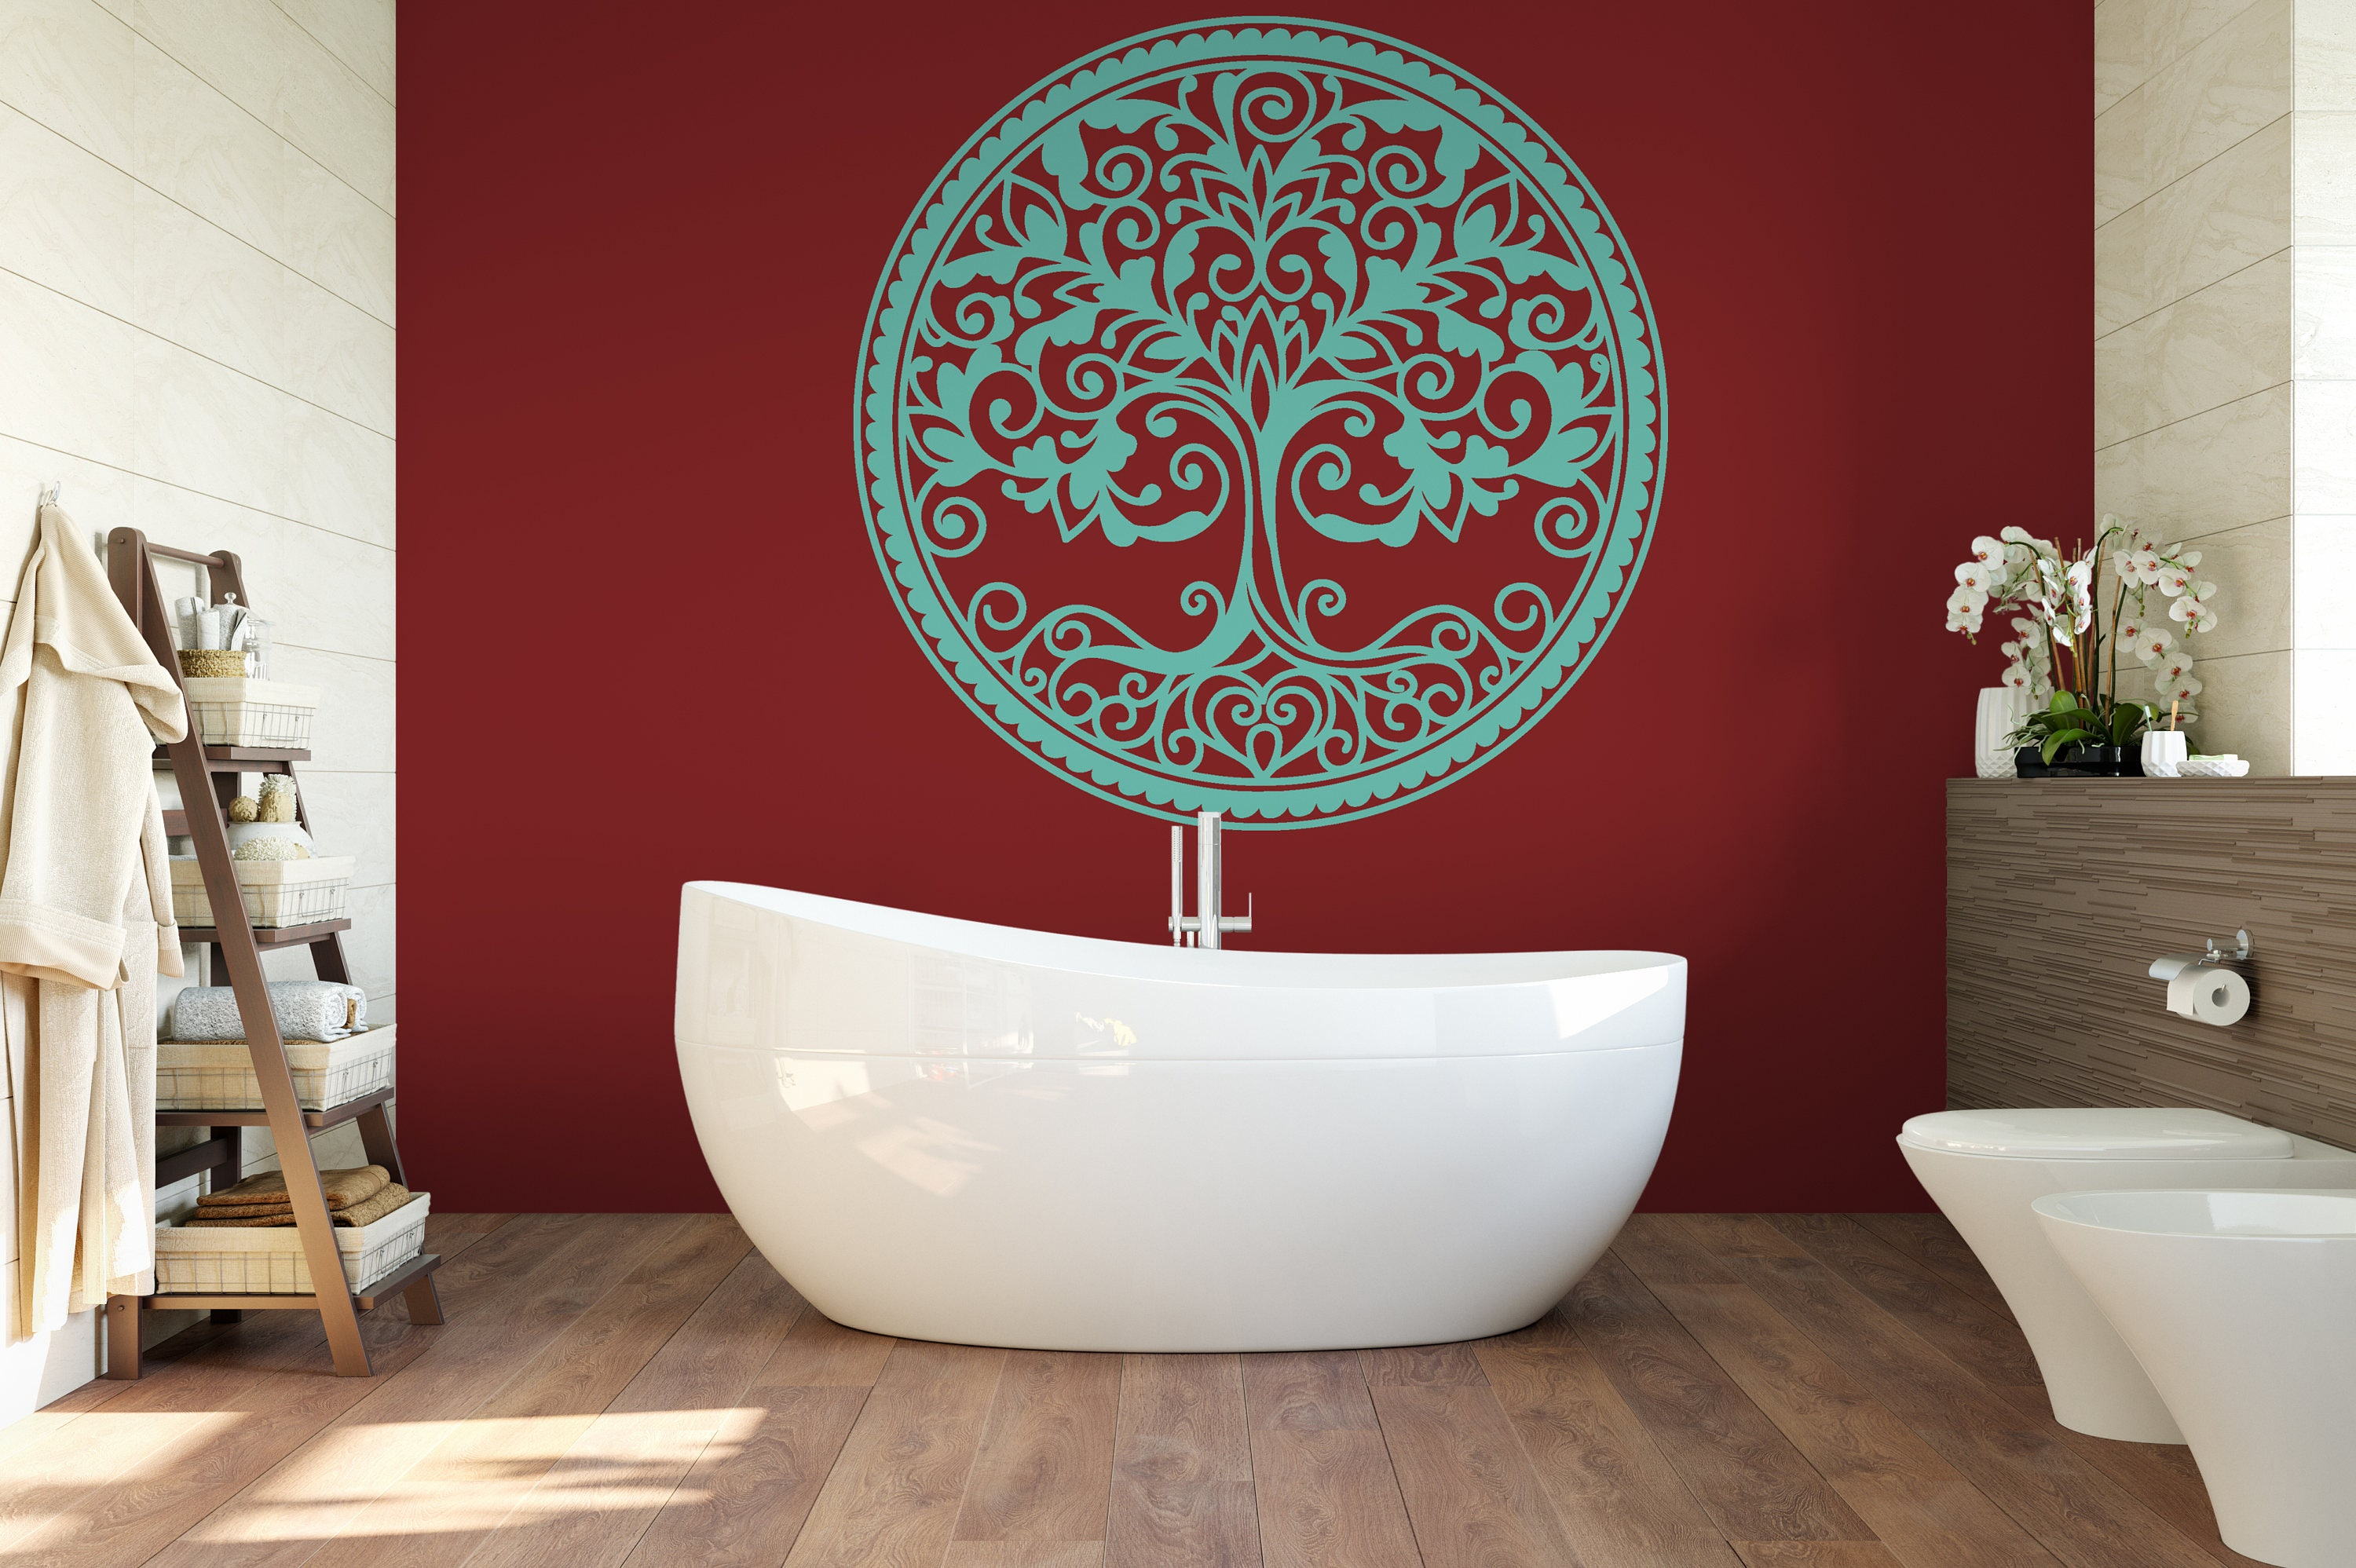 Tree Of Life Wall Decor Room Decor Vinyl Wall Art Decal